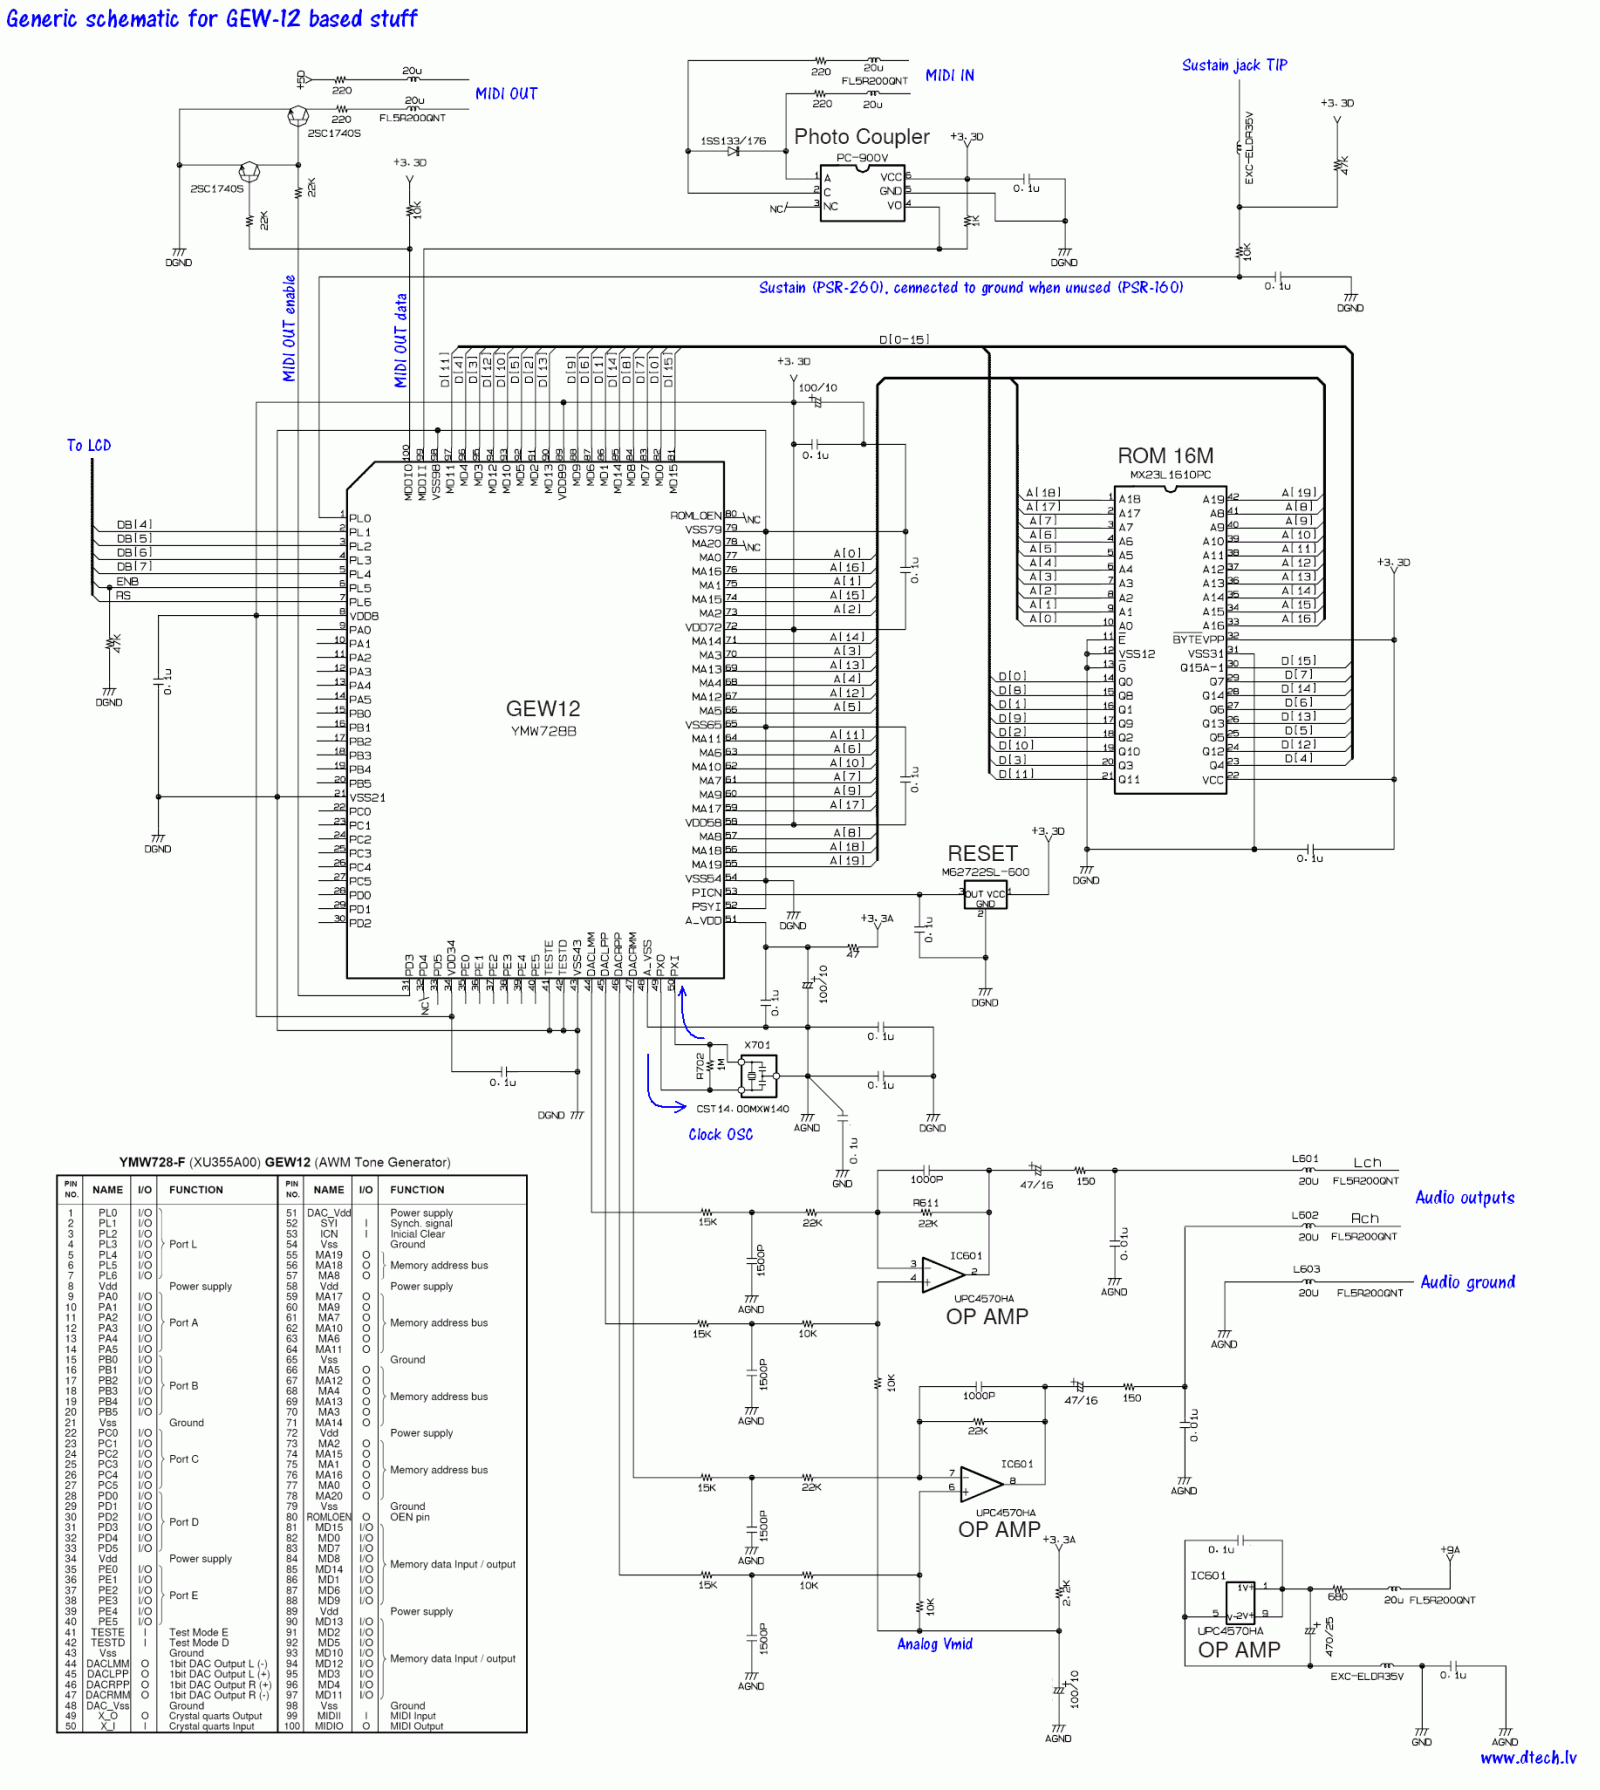 Kitchenaid Wiring Diagram Whirlpool Gold Dishwasher Superba Ice Maker View Large